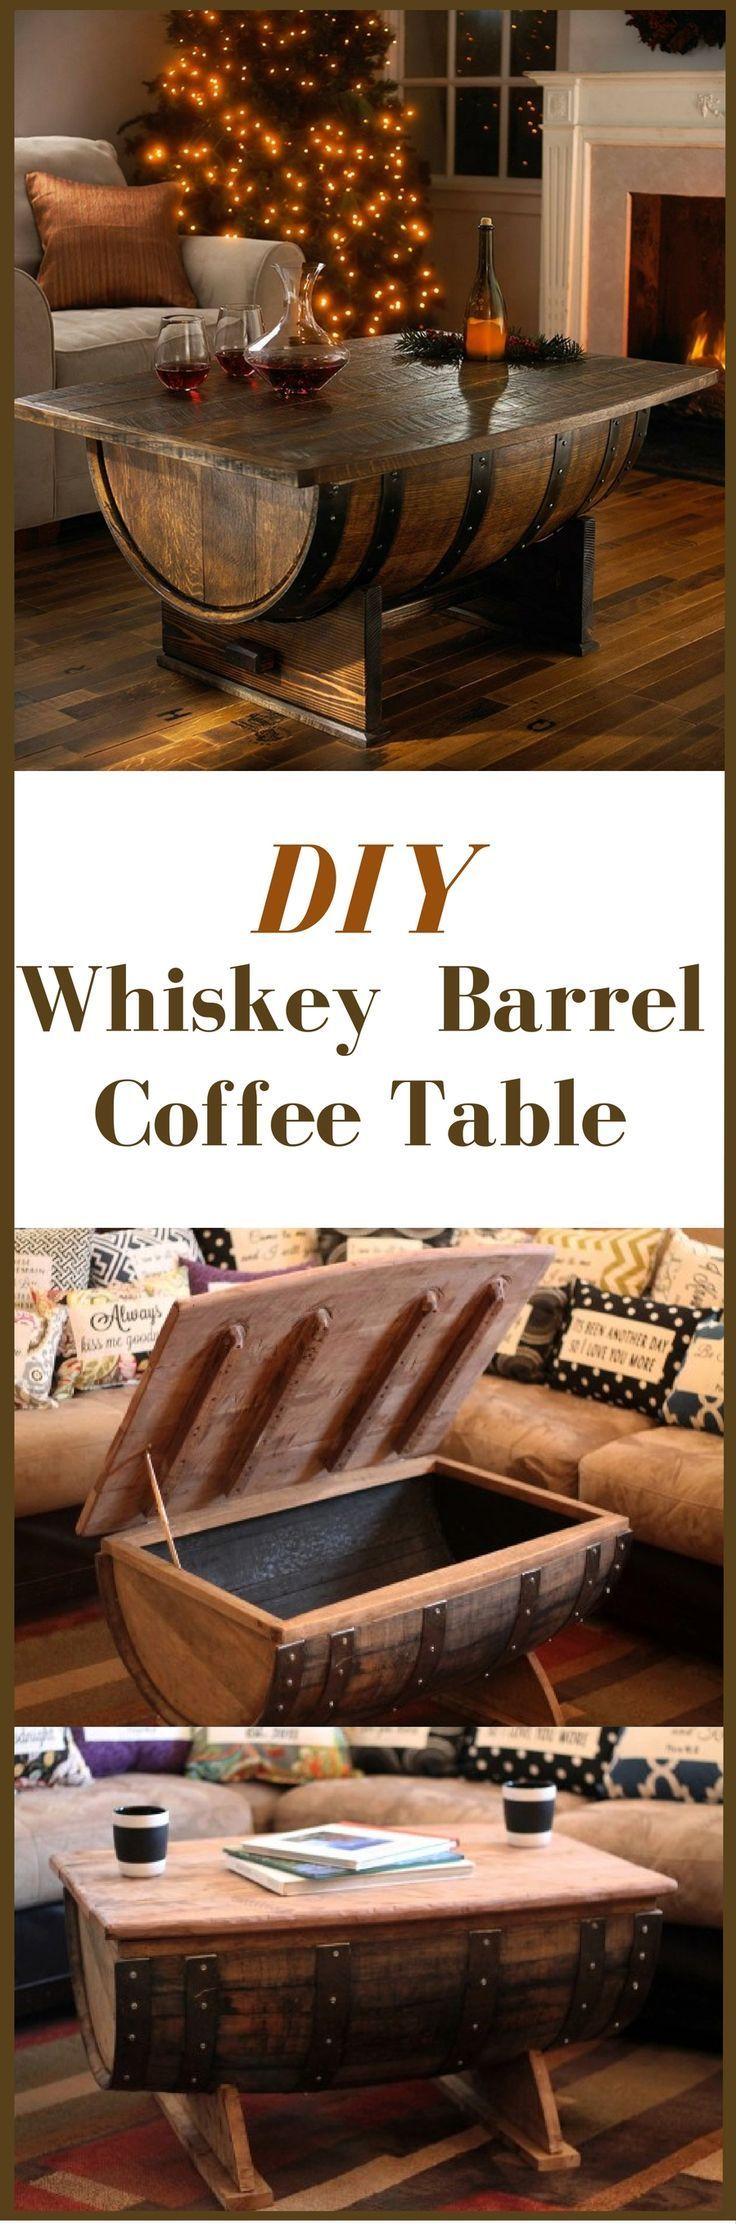 cool cool How To Build A Whiskey Barrel Coffee Table vid.staged.com/67Ws... by www.be... by http://www.best99-home-decor-pics.club/asian-home-decor/cool-how-to-build-a-whiskey-barrel-coffee-table-vid-staged-com67ws-by-www-be/